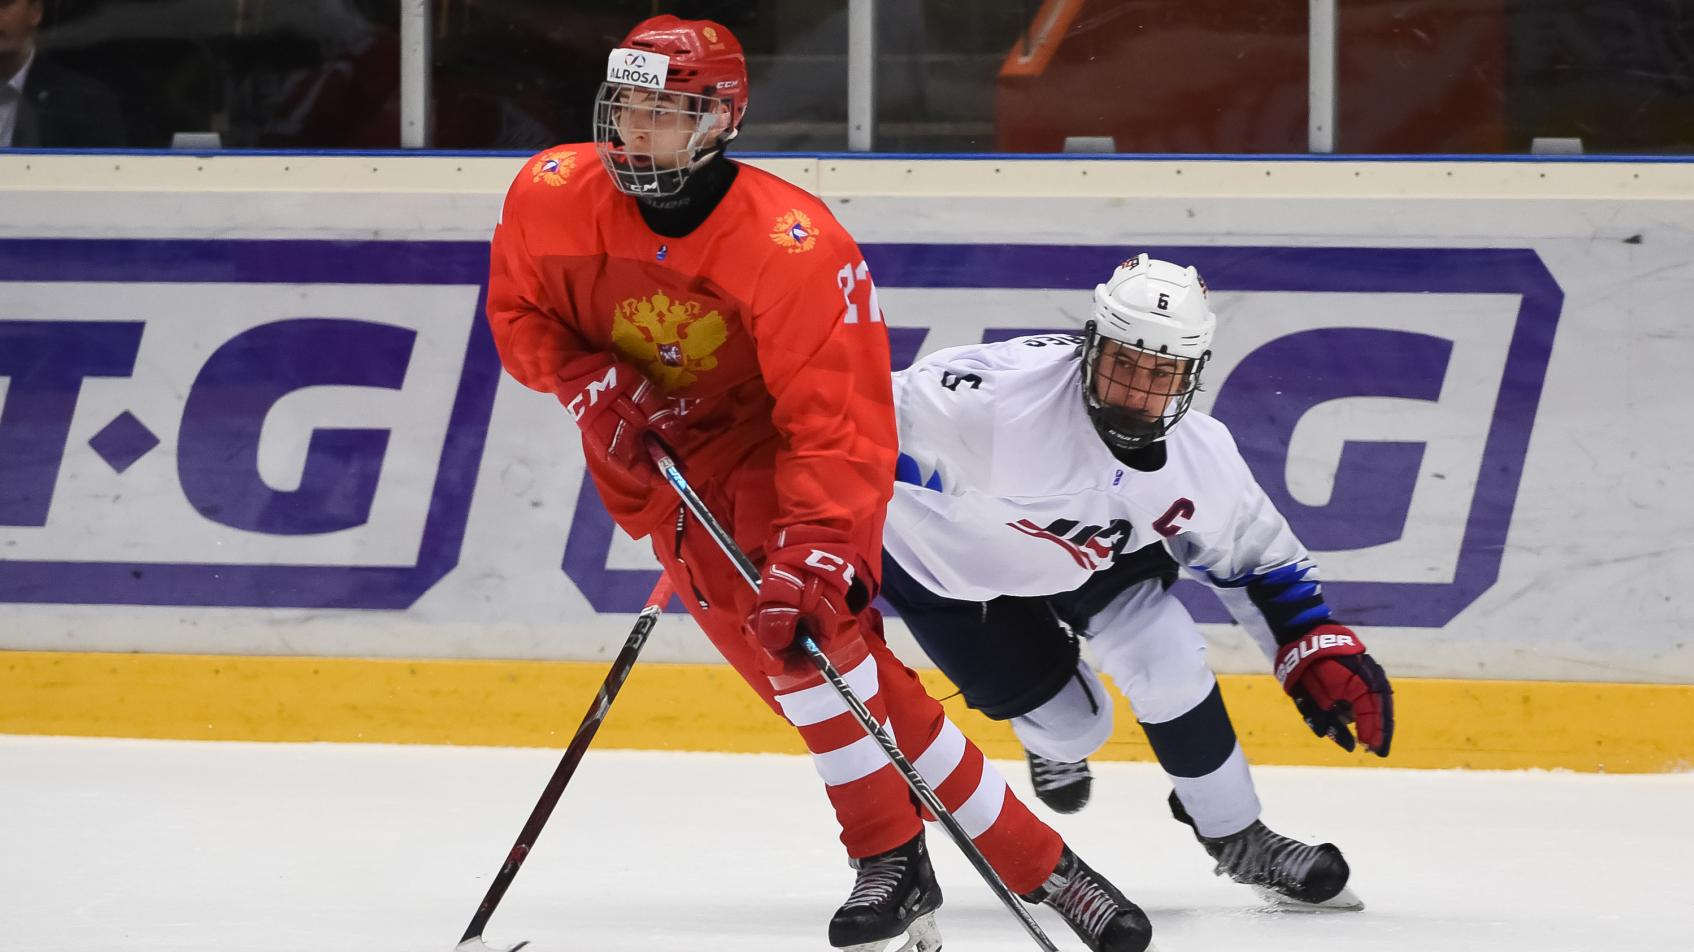 Rodio Amirov, Toronto Maple Leafs 15th overall draft selection